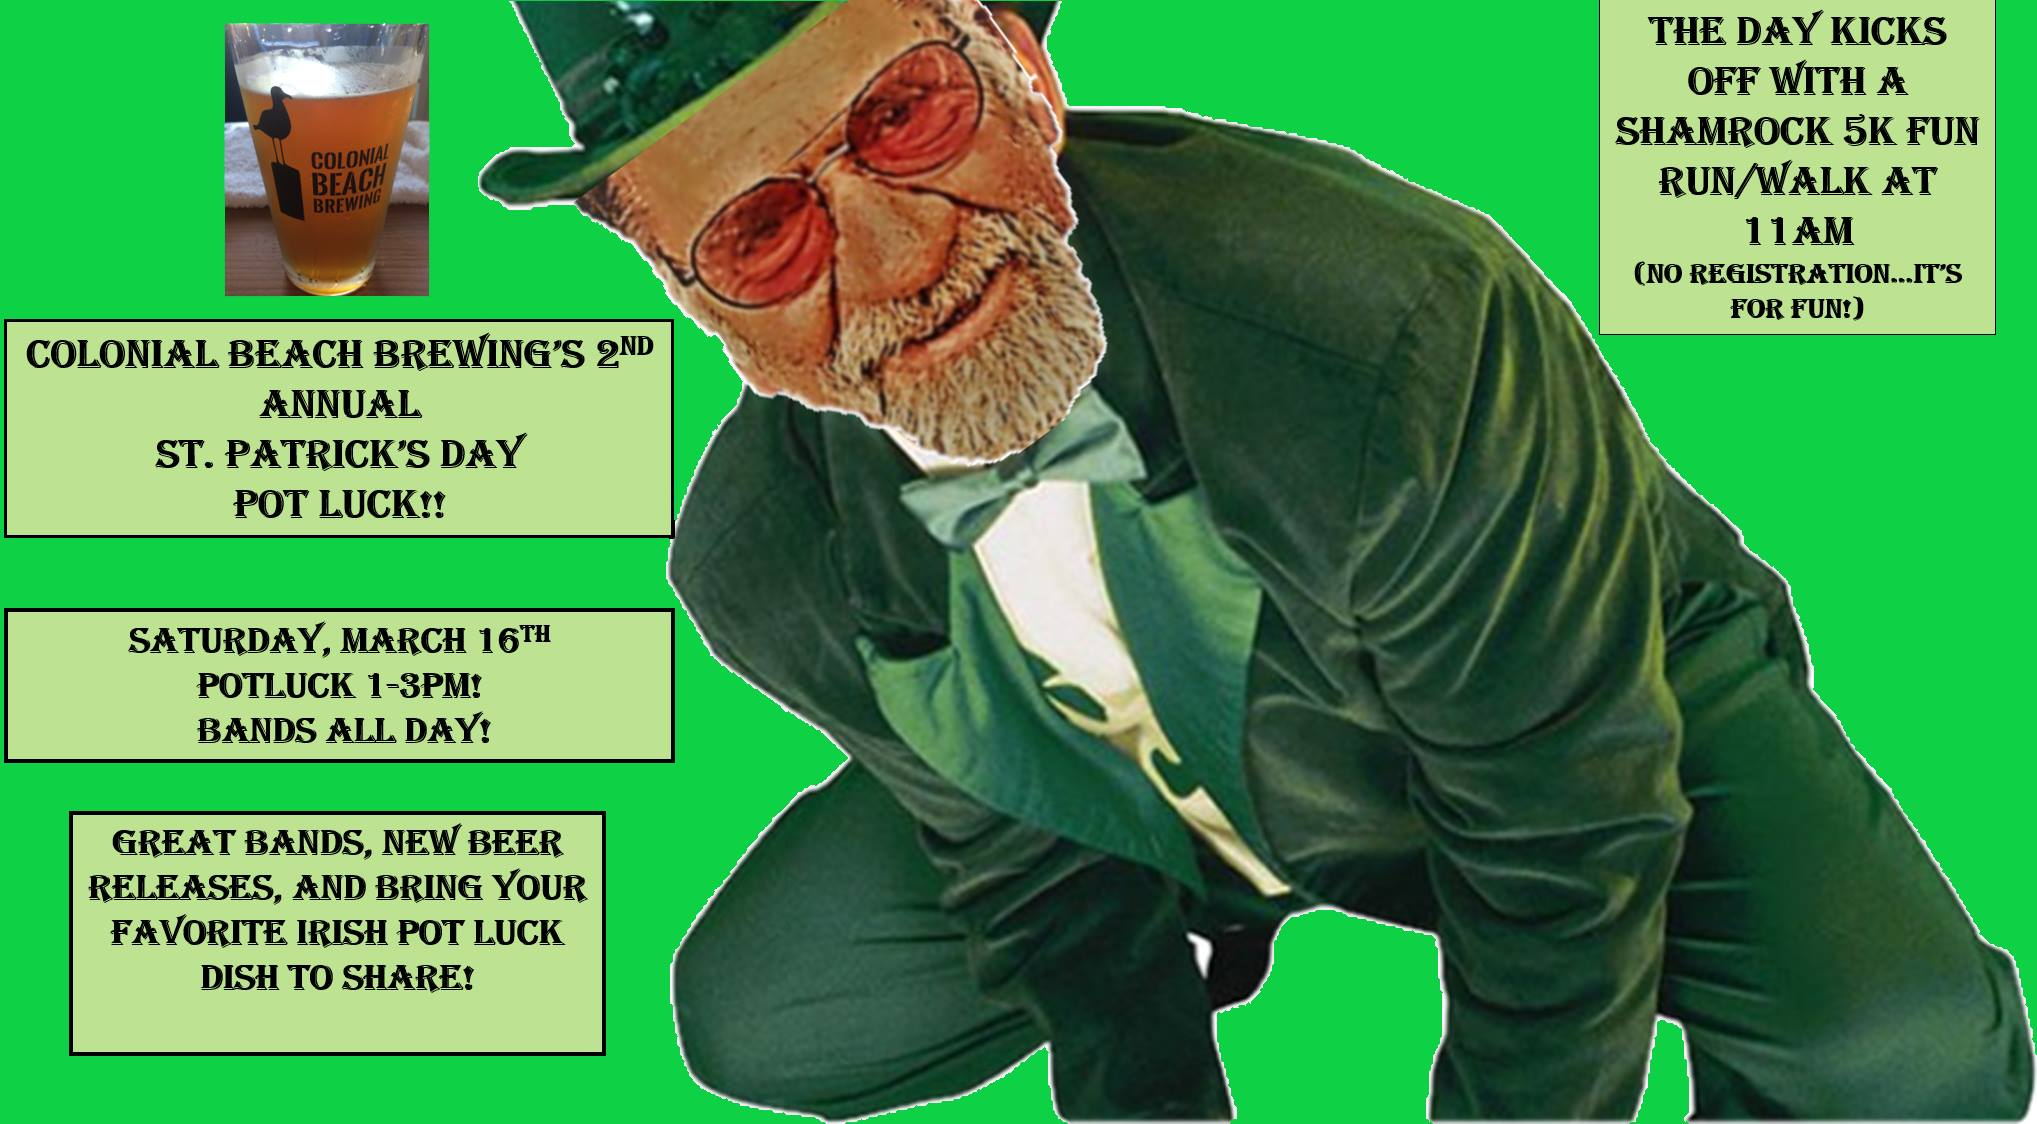 Colonial Beach Brewing St. Patrick's Day Potluck featuring food, craft beer, live music and 5k